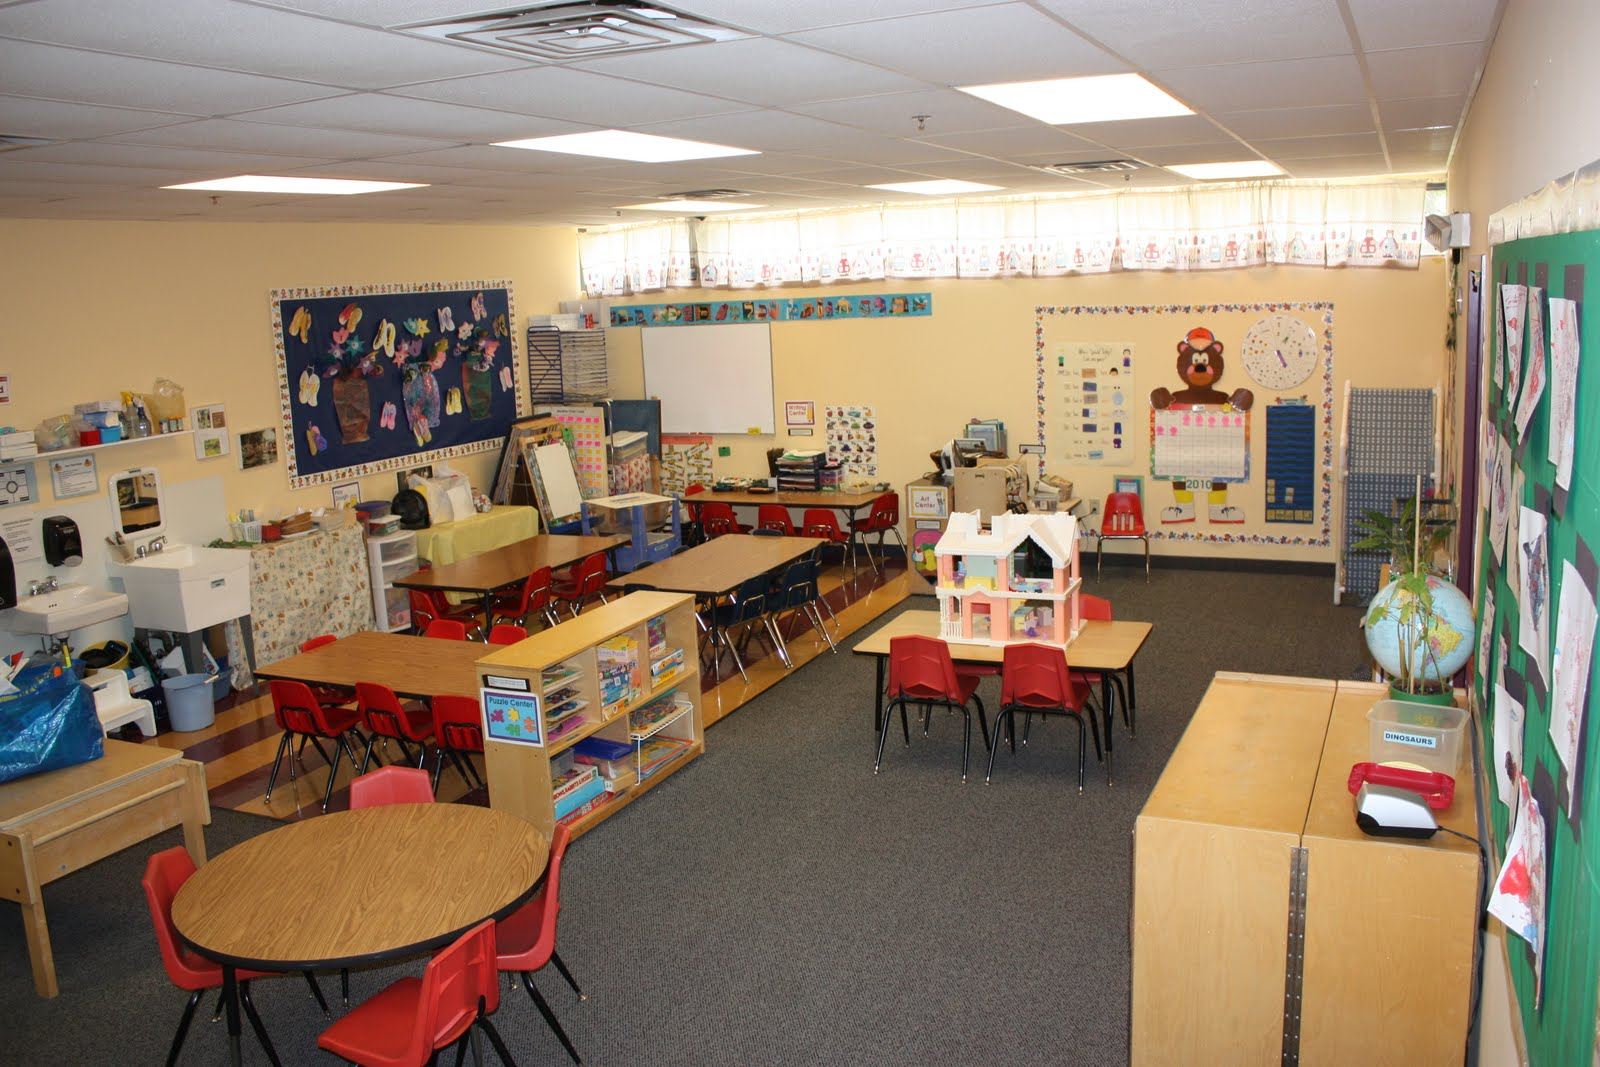 Classroom Design In Preschool ~ Home design letsroll preschool classroom